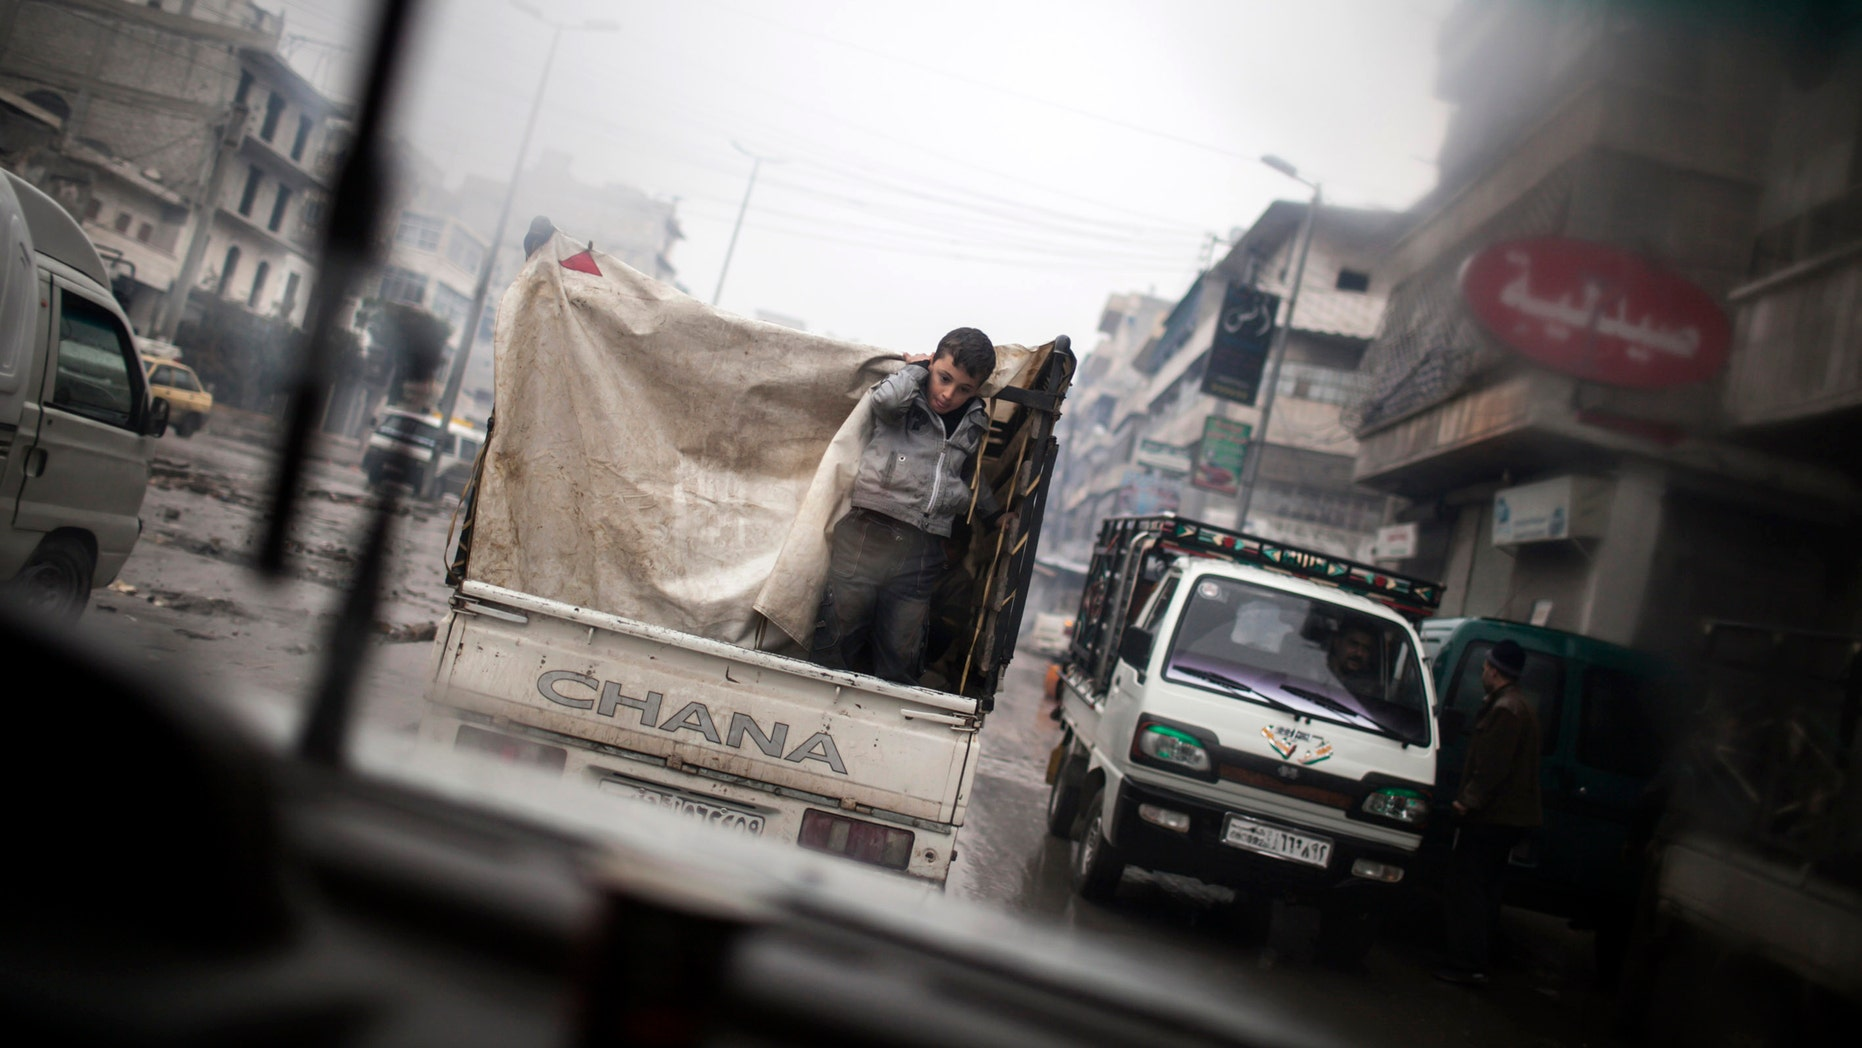 A boy is seen through a car window as he rides on the back of a truck in the streets of Aleppo, Syria, Saturday, Jan. 5, 2013. The revolt against President Bashar Assad that started in March 2011 began with peaceful protests but morphed into a civil war that has killed more than 60,000 people, according to a recent United Nations recent estimate. (AP Photo/ Andoni Lubaki)